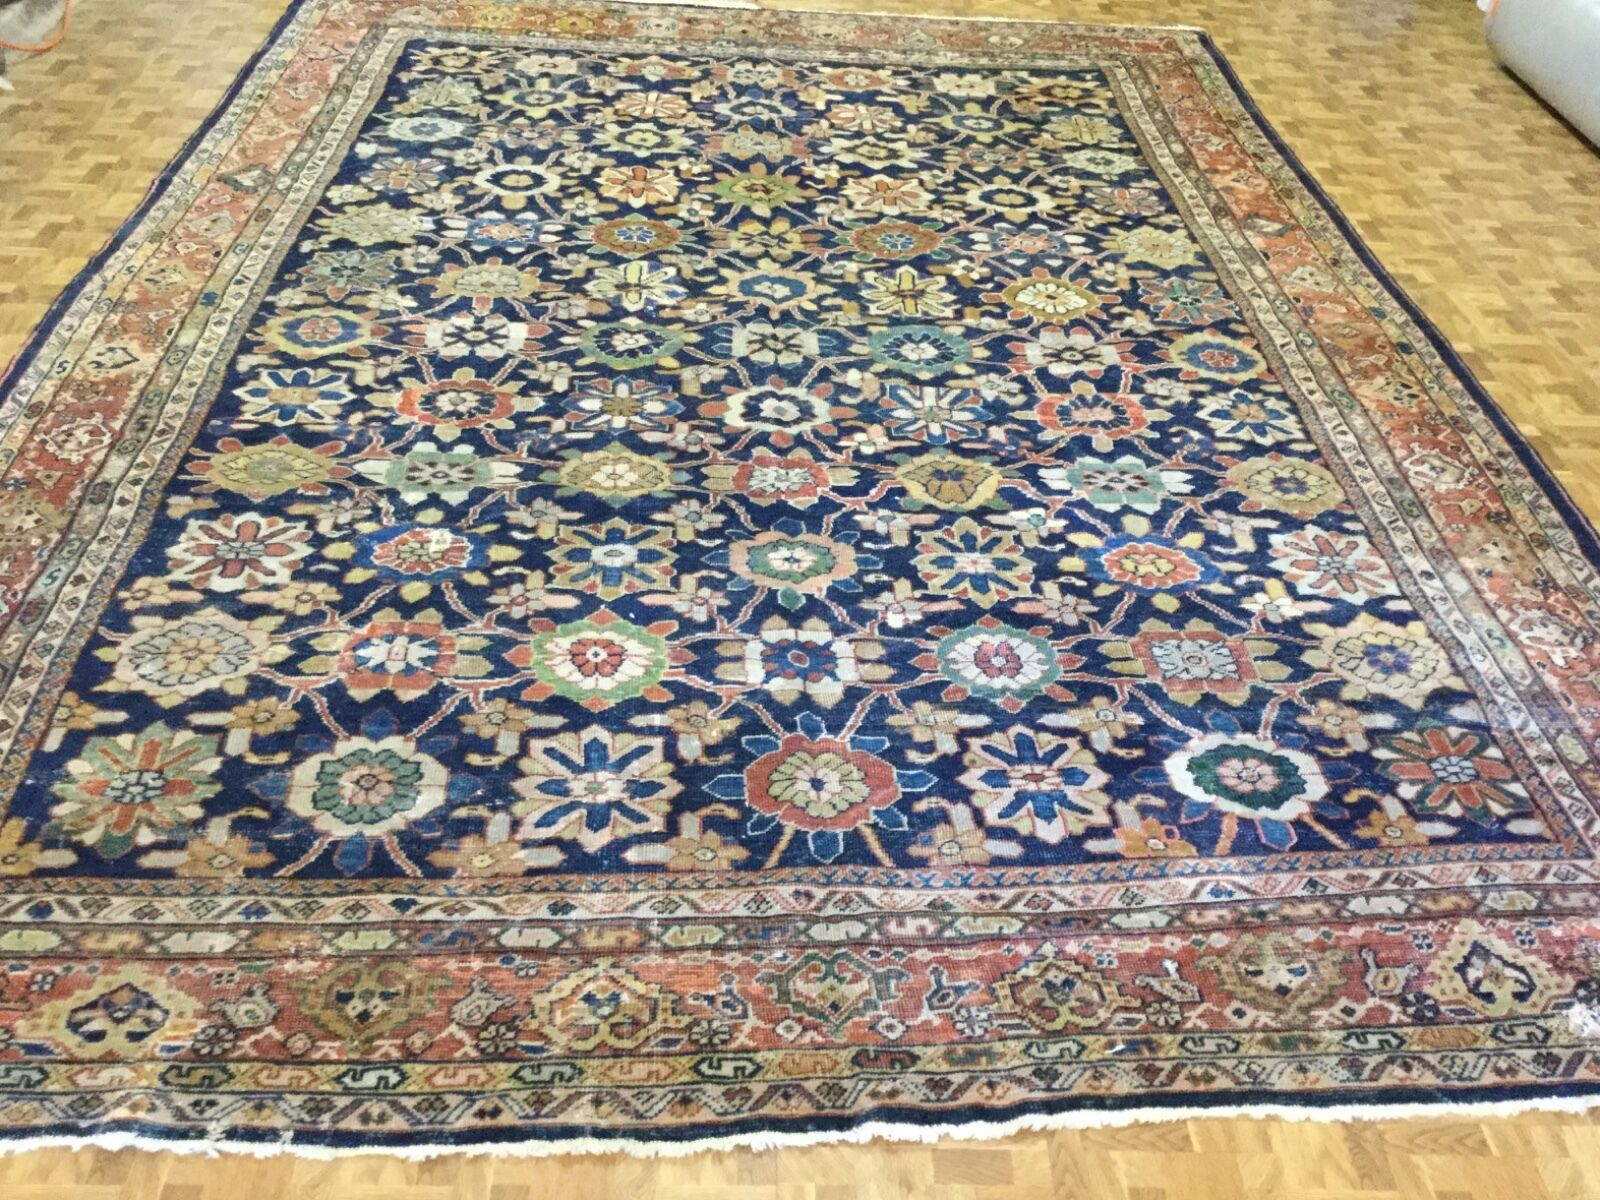 Antique Persian all over Ziegler Mahal Rug